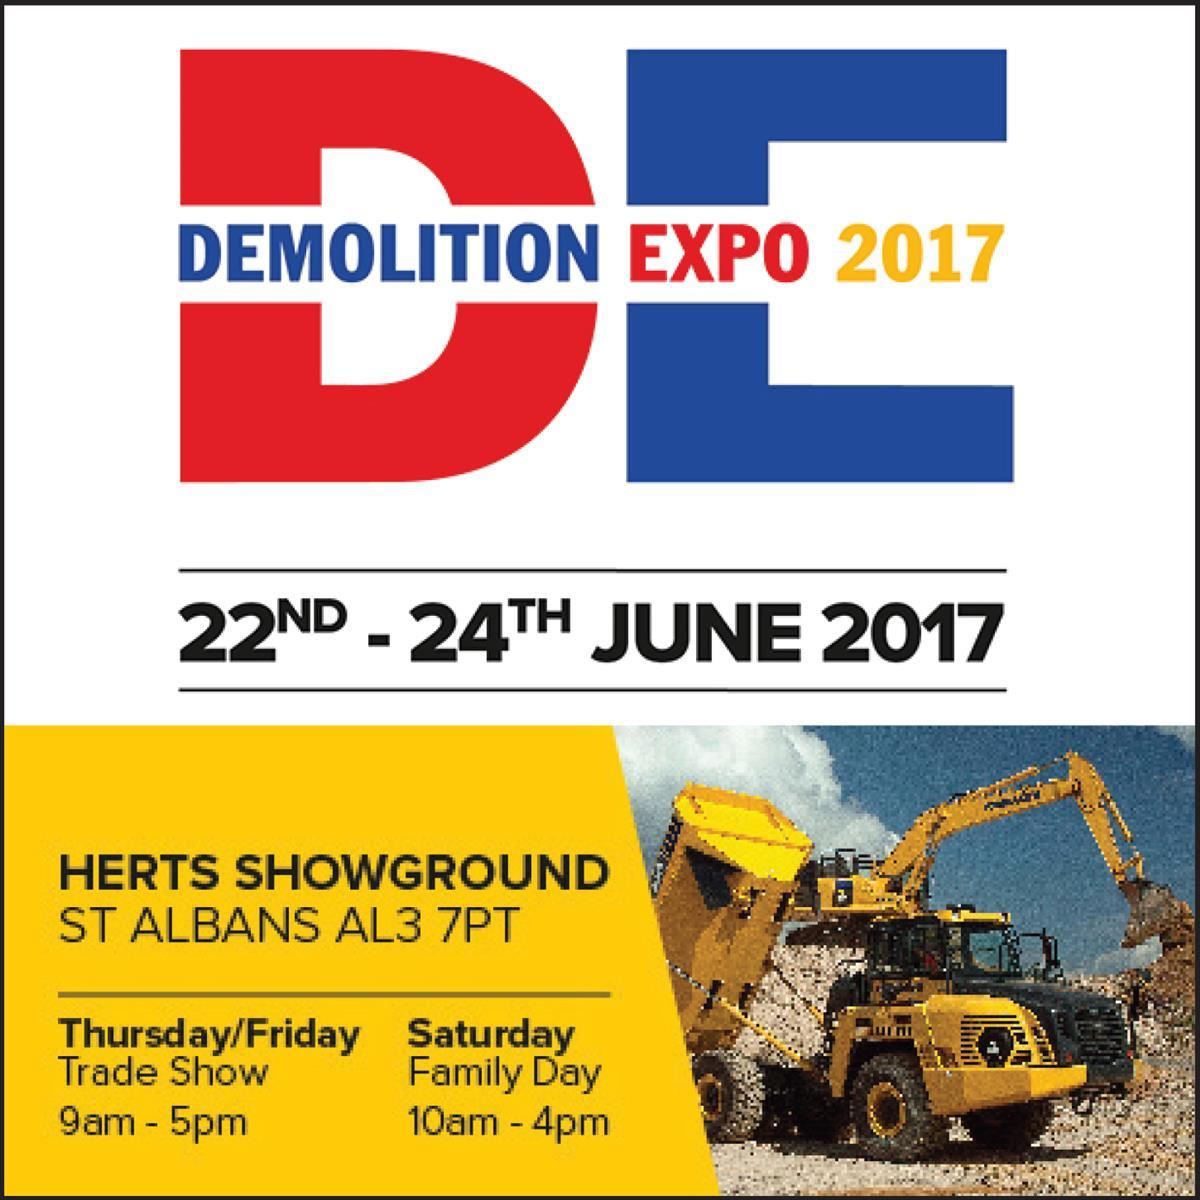 Meet The Team At Demolition Expo